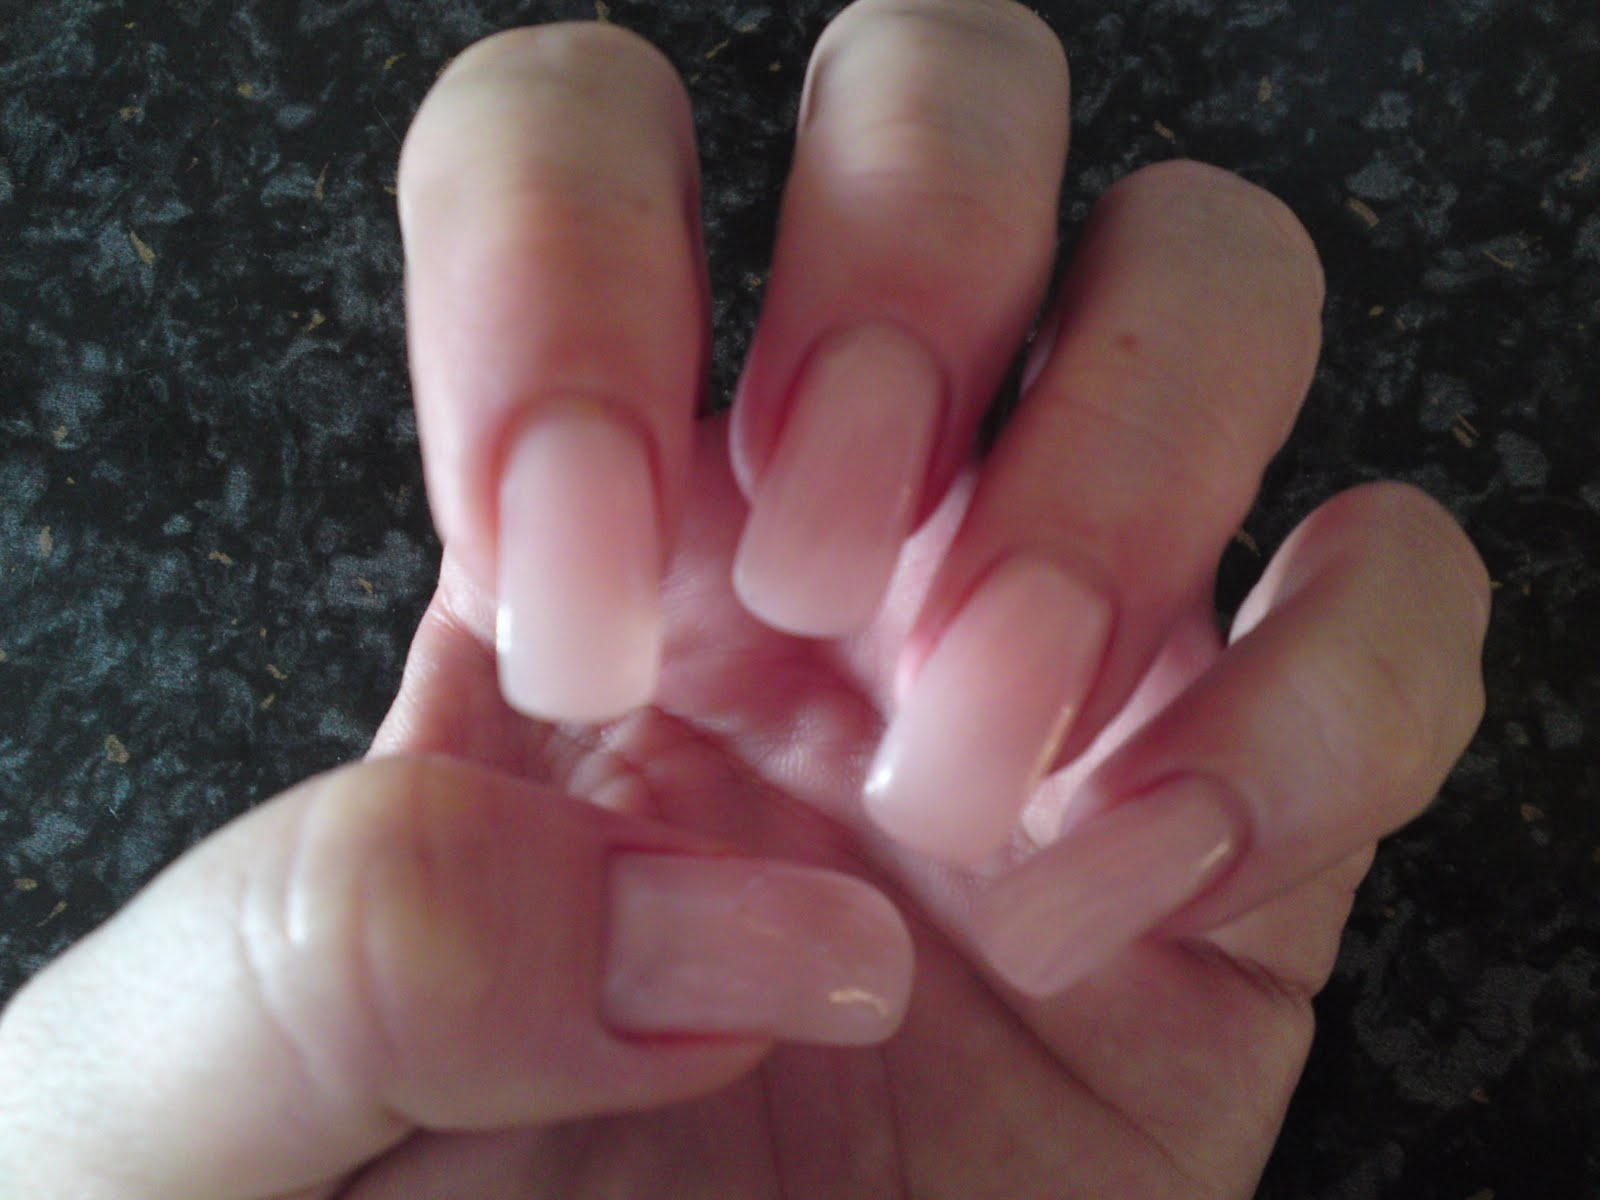 Pinkissimo Pinkhair: My new set of gel nails and QVC